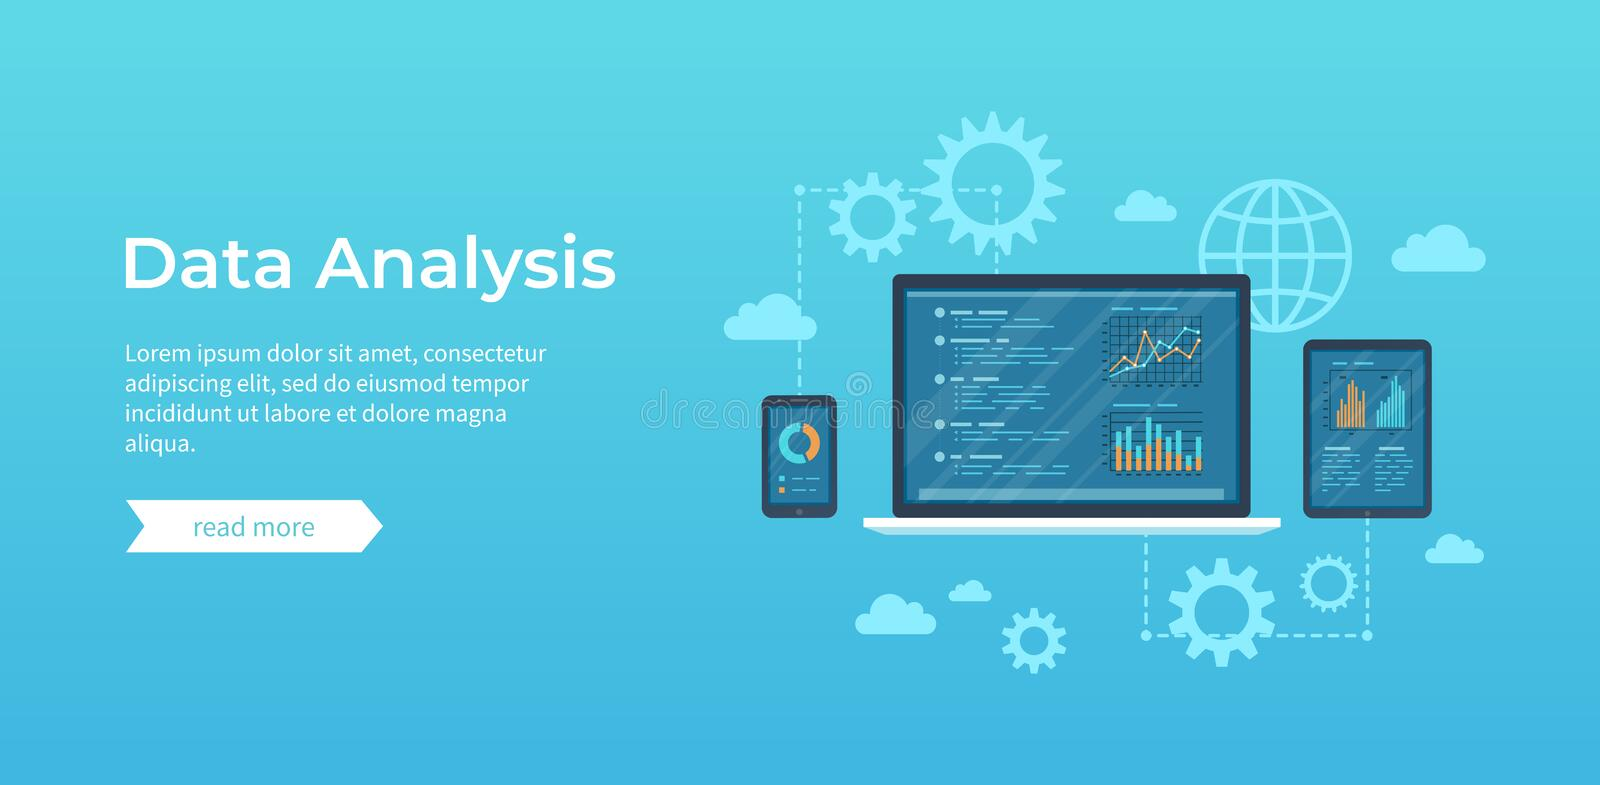 Data analysis. Analytics, statistics, audit, research, report. Web online and mobile service. Financial reports, charts graphs royalty free illustration